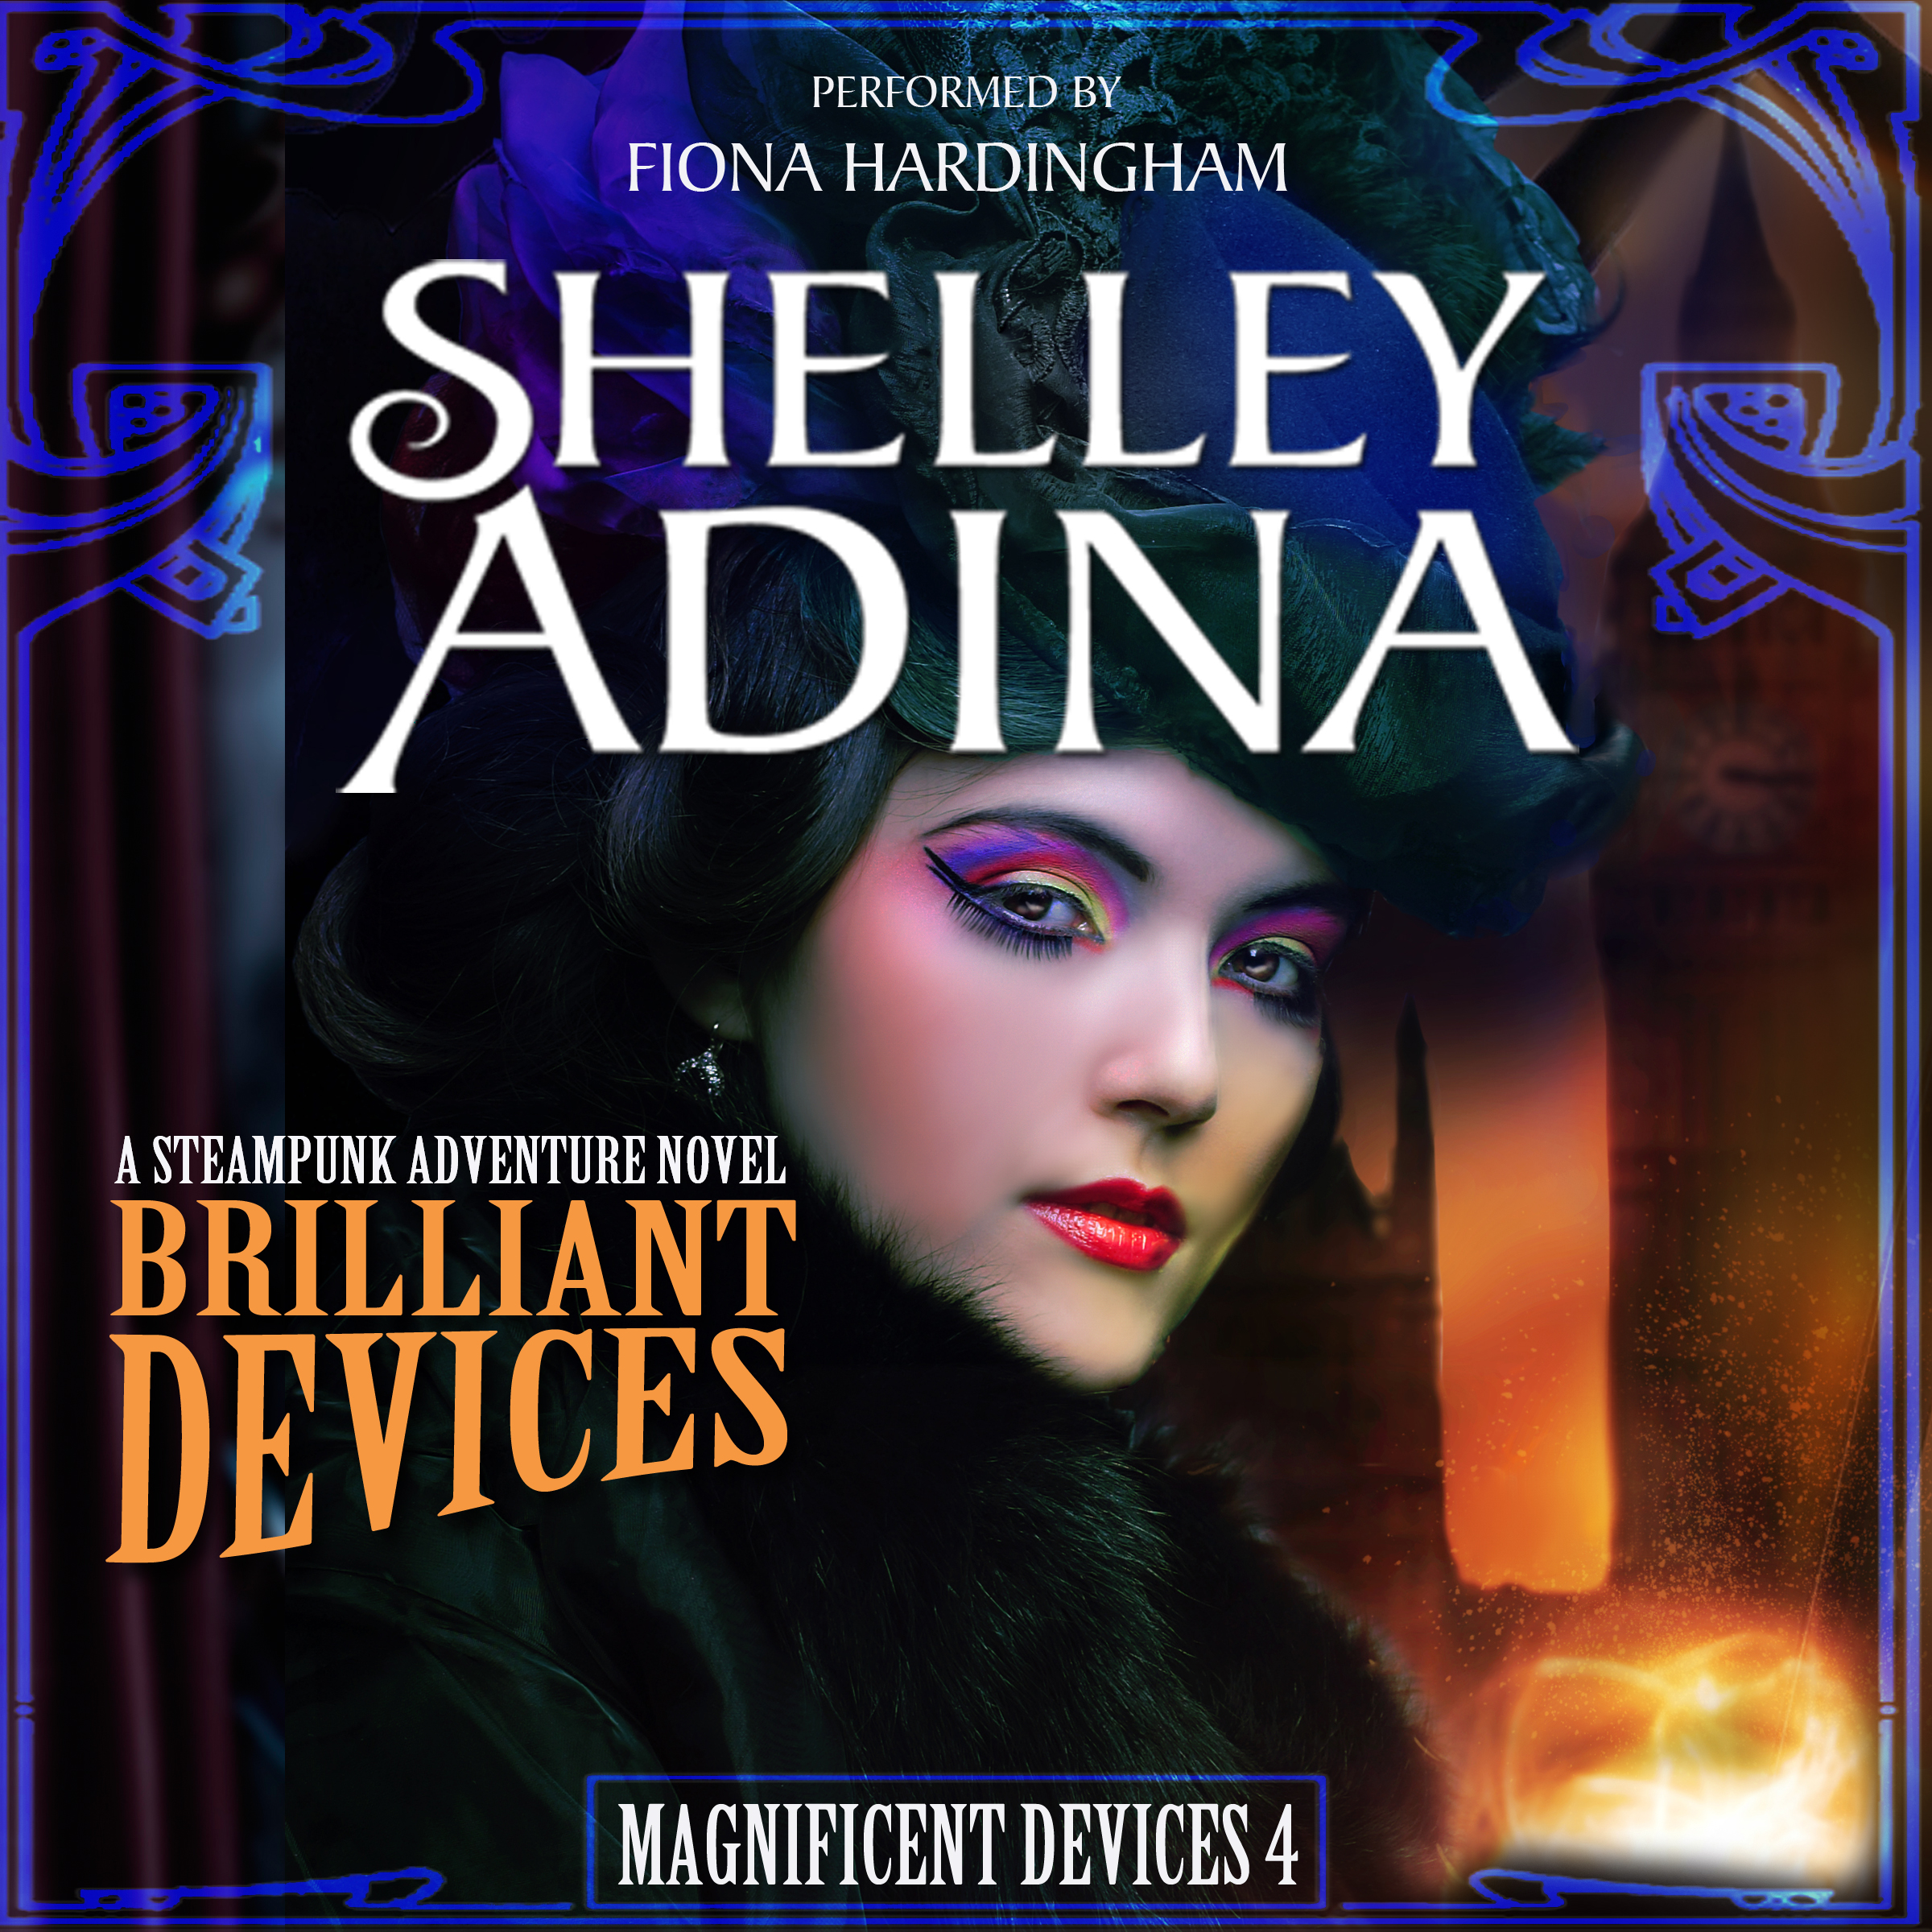 Brilliant Devices audiobook by Shelley Adina, performed by Fiona Hardingham